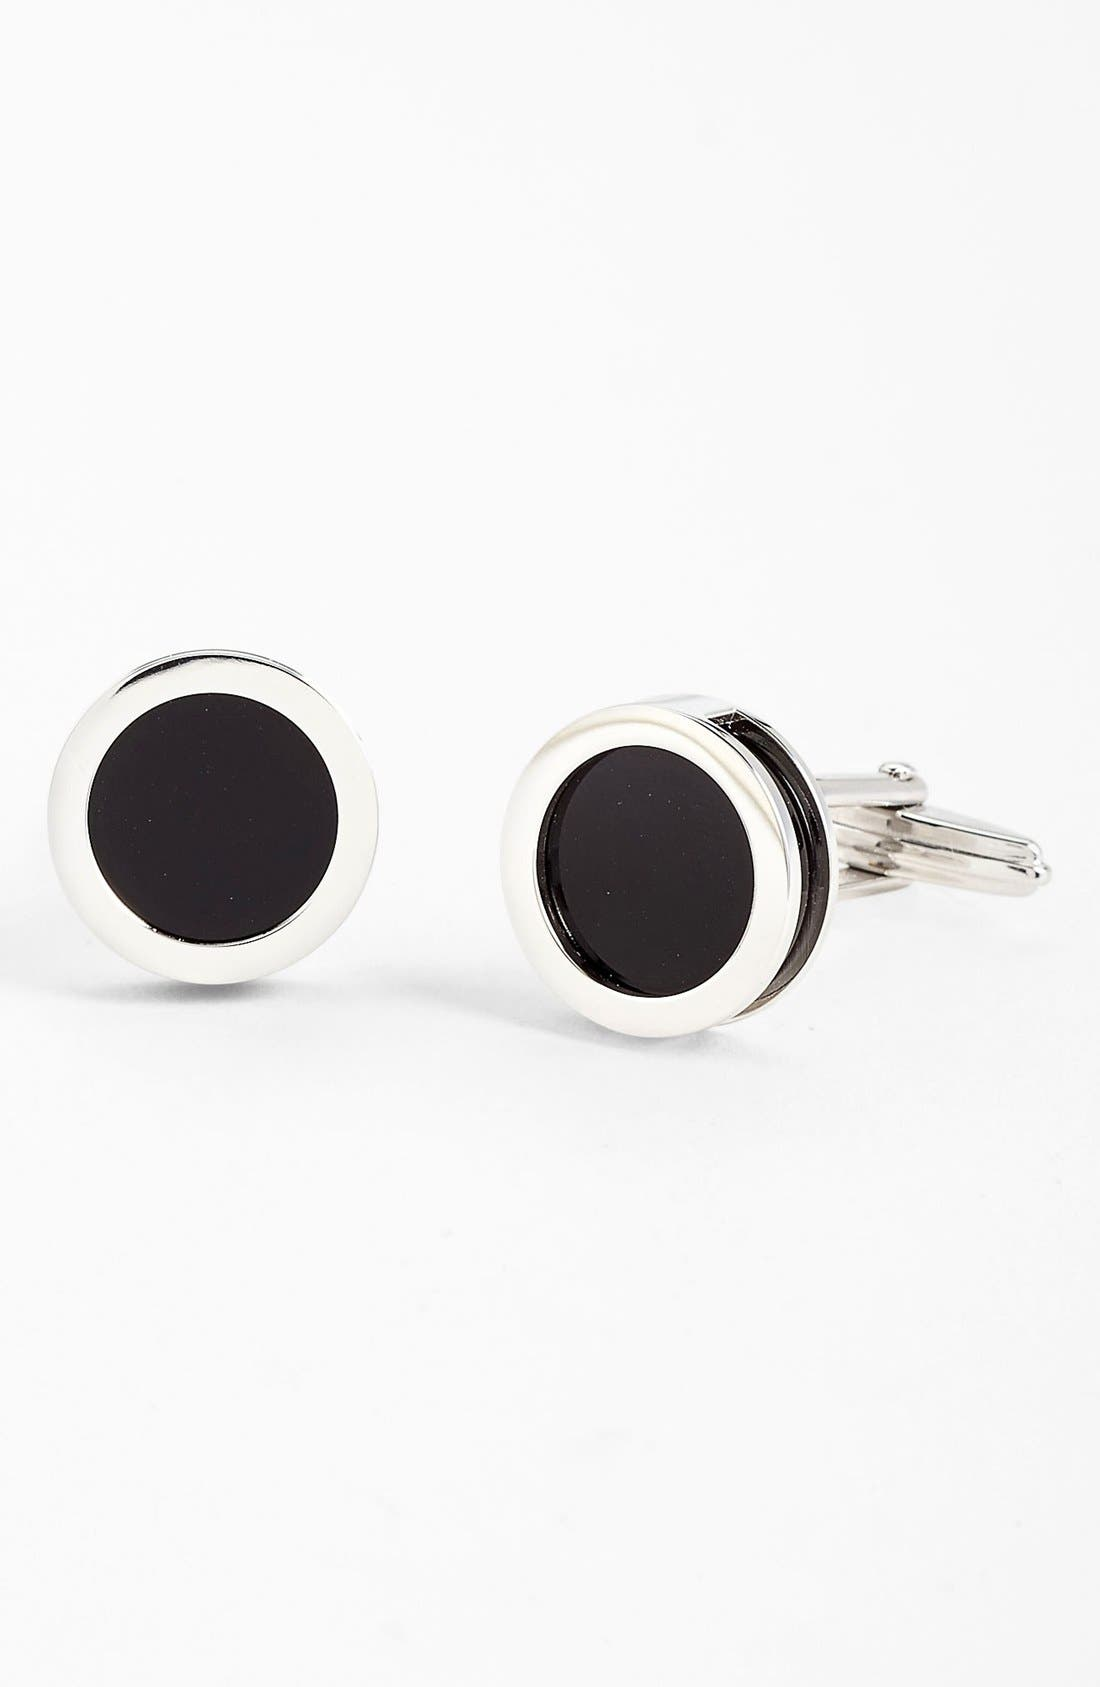 Alternate Image 1 Selected - Lanvin Interchangeable Onyx & Mother-of-Pearl Cuff Links